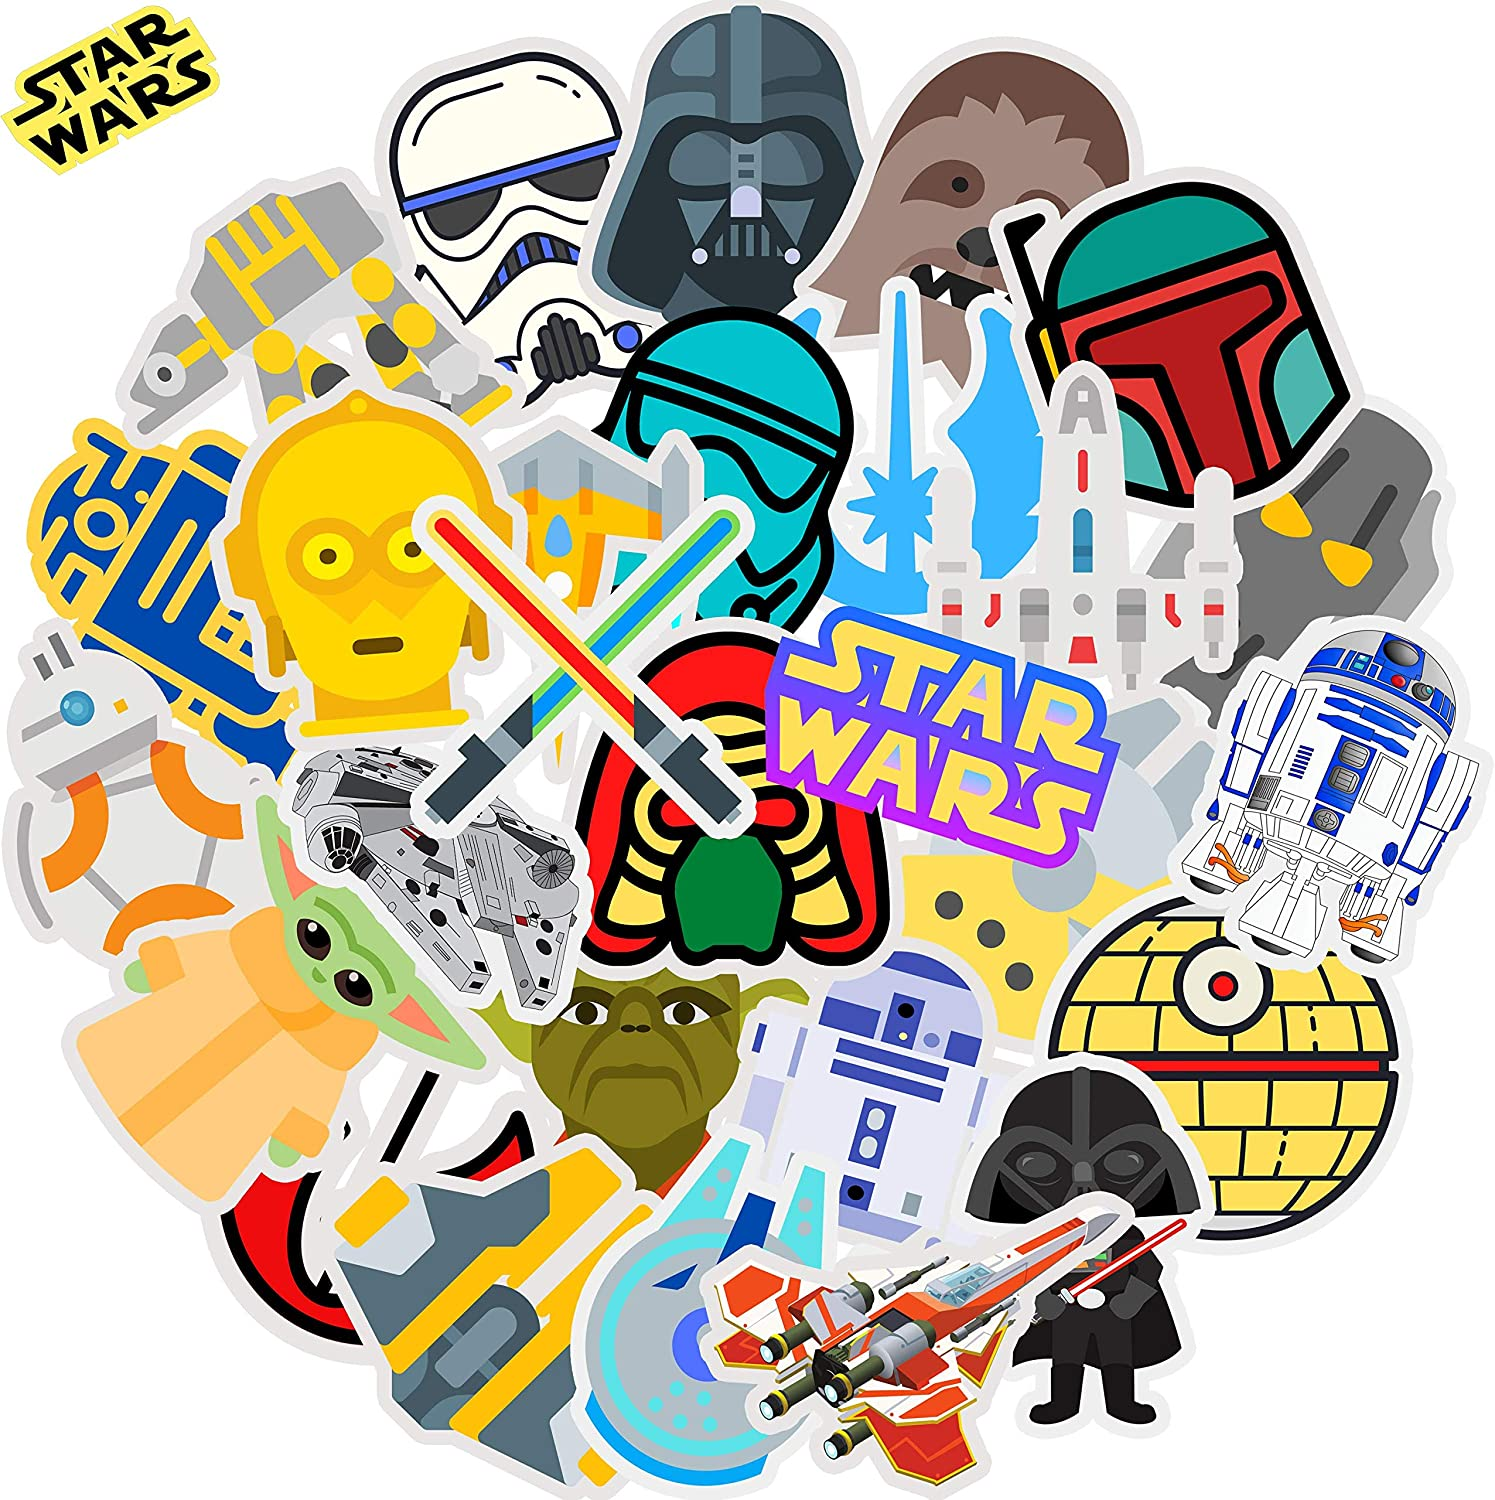 Star Wars Stickers for Hydro Flask Laptop Water Bottle | Premium Vinyl Big Waterproof | Funny Trendy VSCO Cool Decal Gift Pack for Teen Kid Adult Girl Boy HydroFlask Skateboard Phone Computer, 30PCS